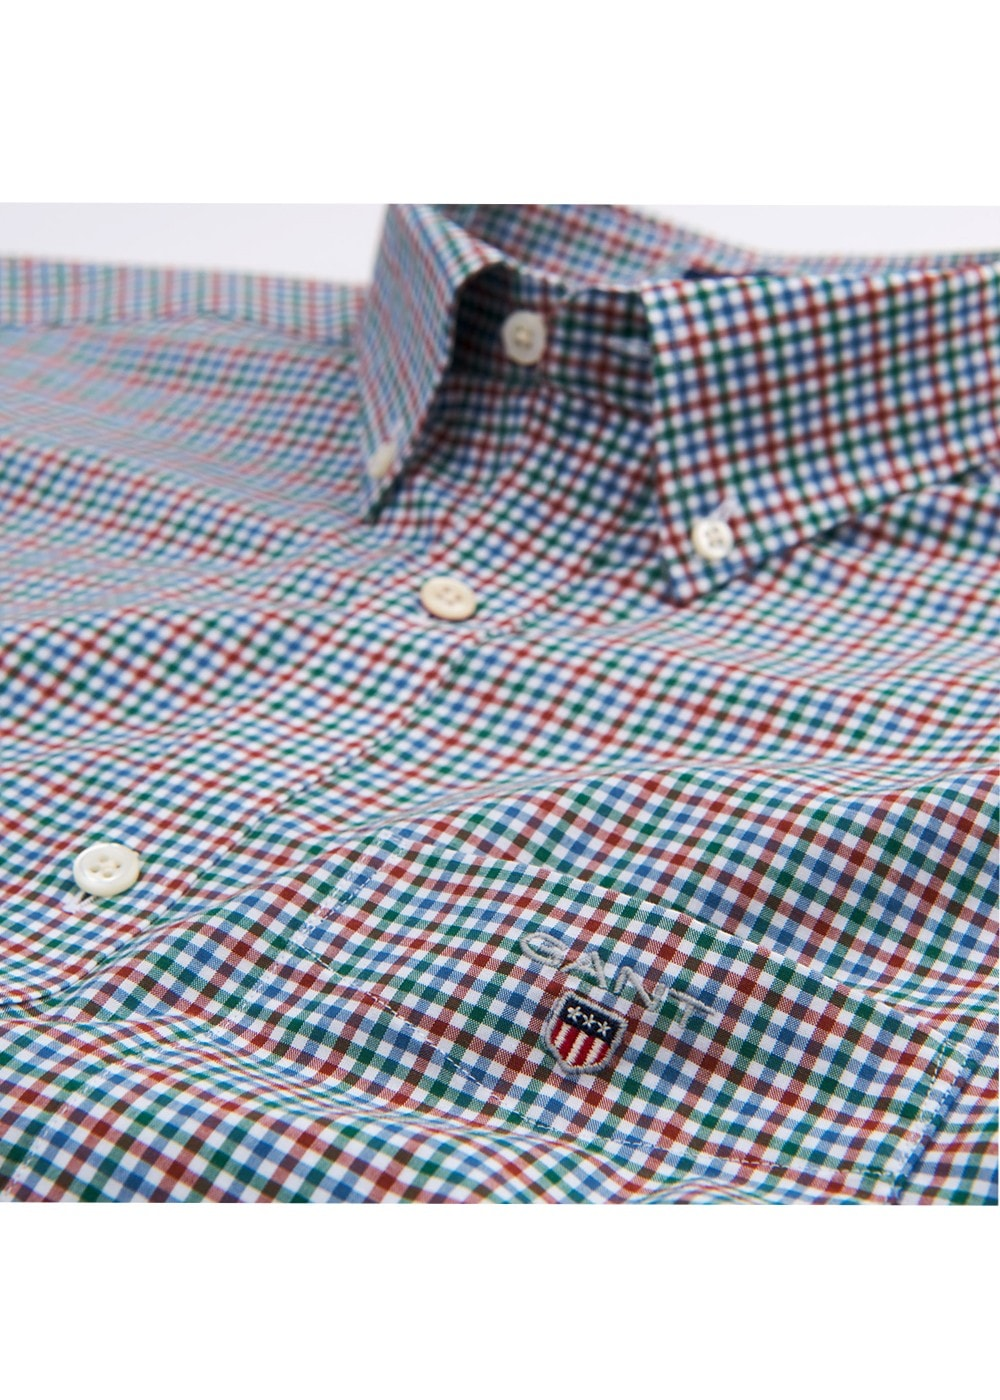 bd37db859e Gant Broadcloth Gingham Shirt - Mens from A Hume UK